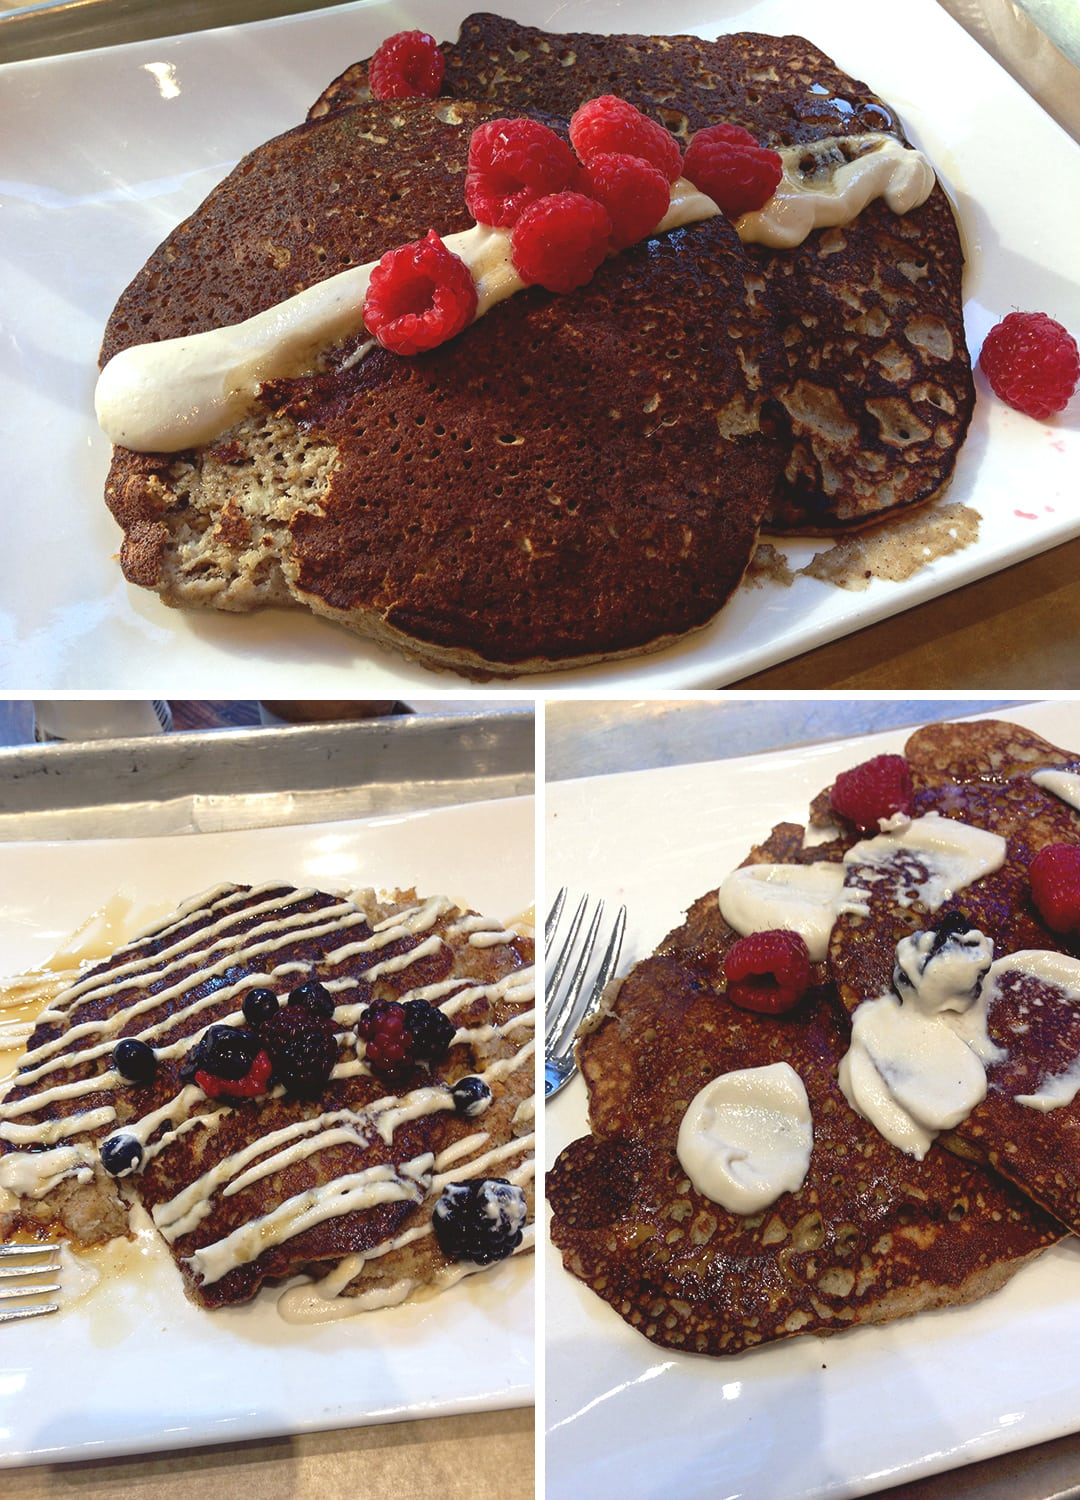 Where to Eat in New York: Hu Kitchen pancakes - Jordy cakes with maple syrup and cashew cream - Union Square location | thehealthfulideas.com